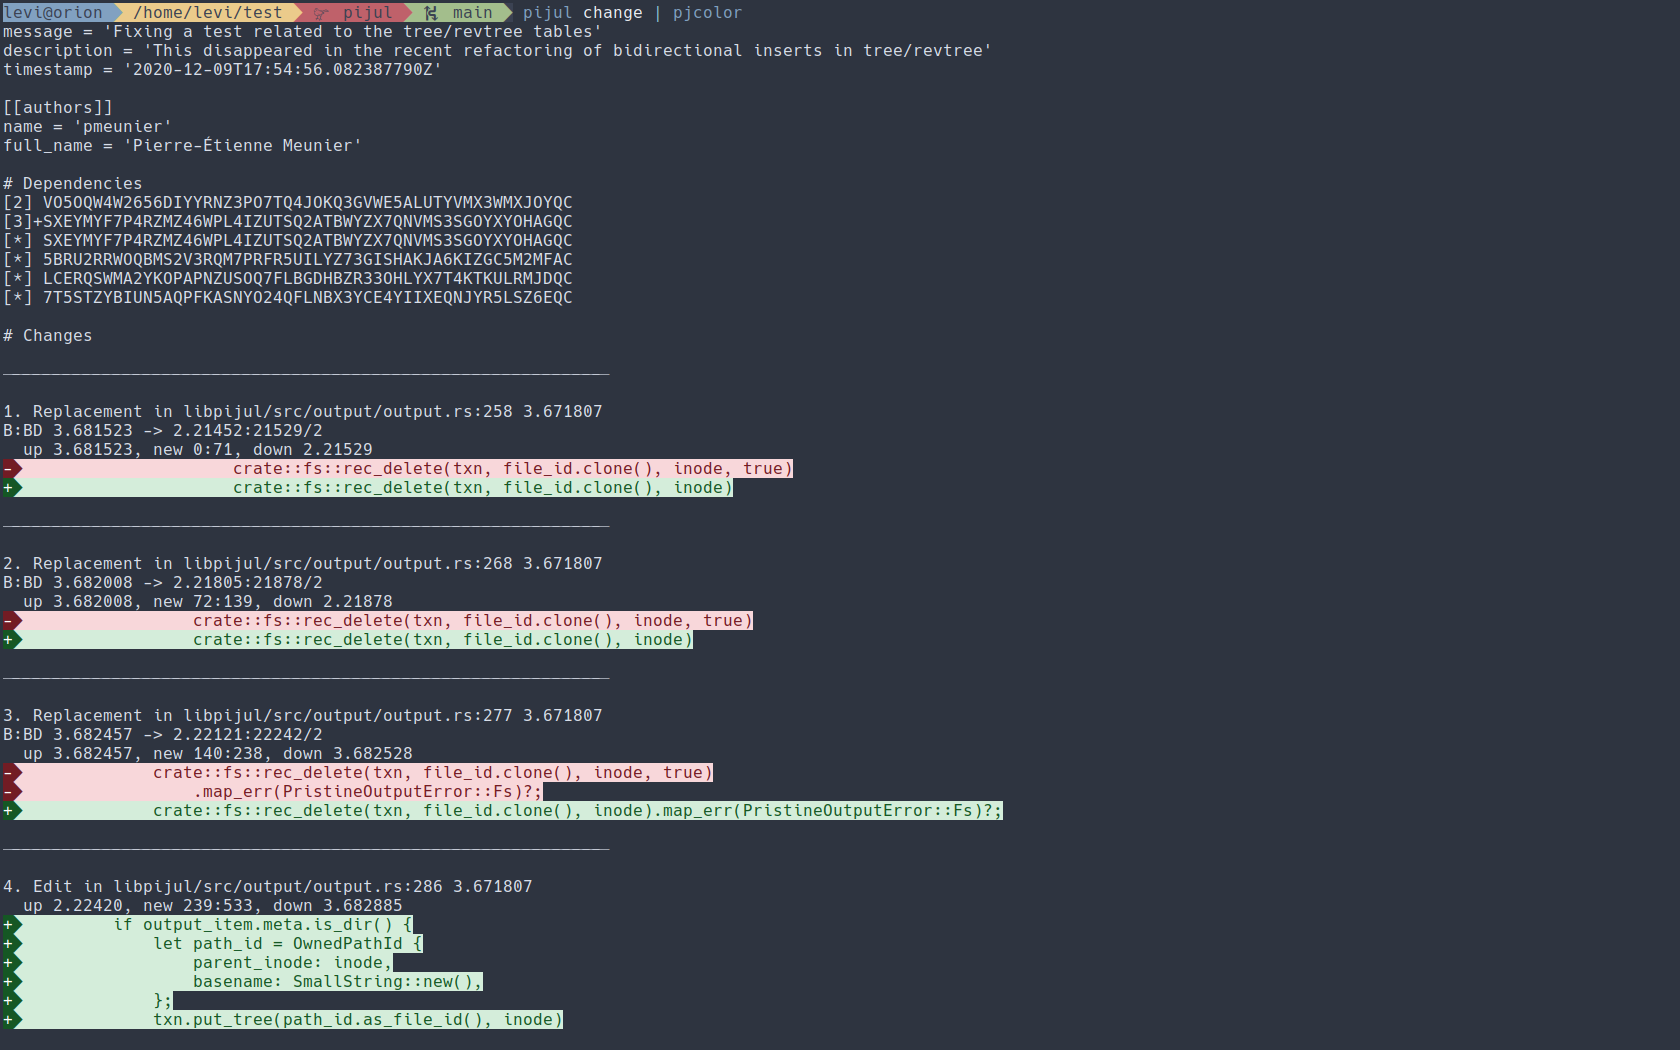 Pjcolor on Alacritty terminal